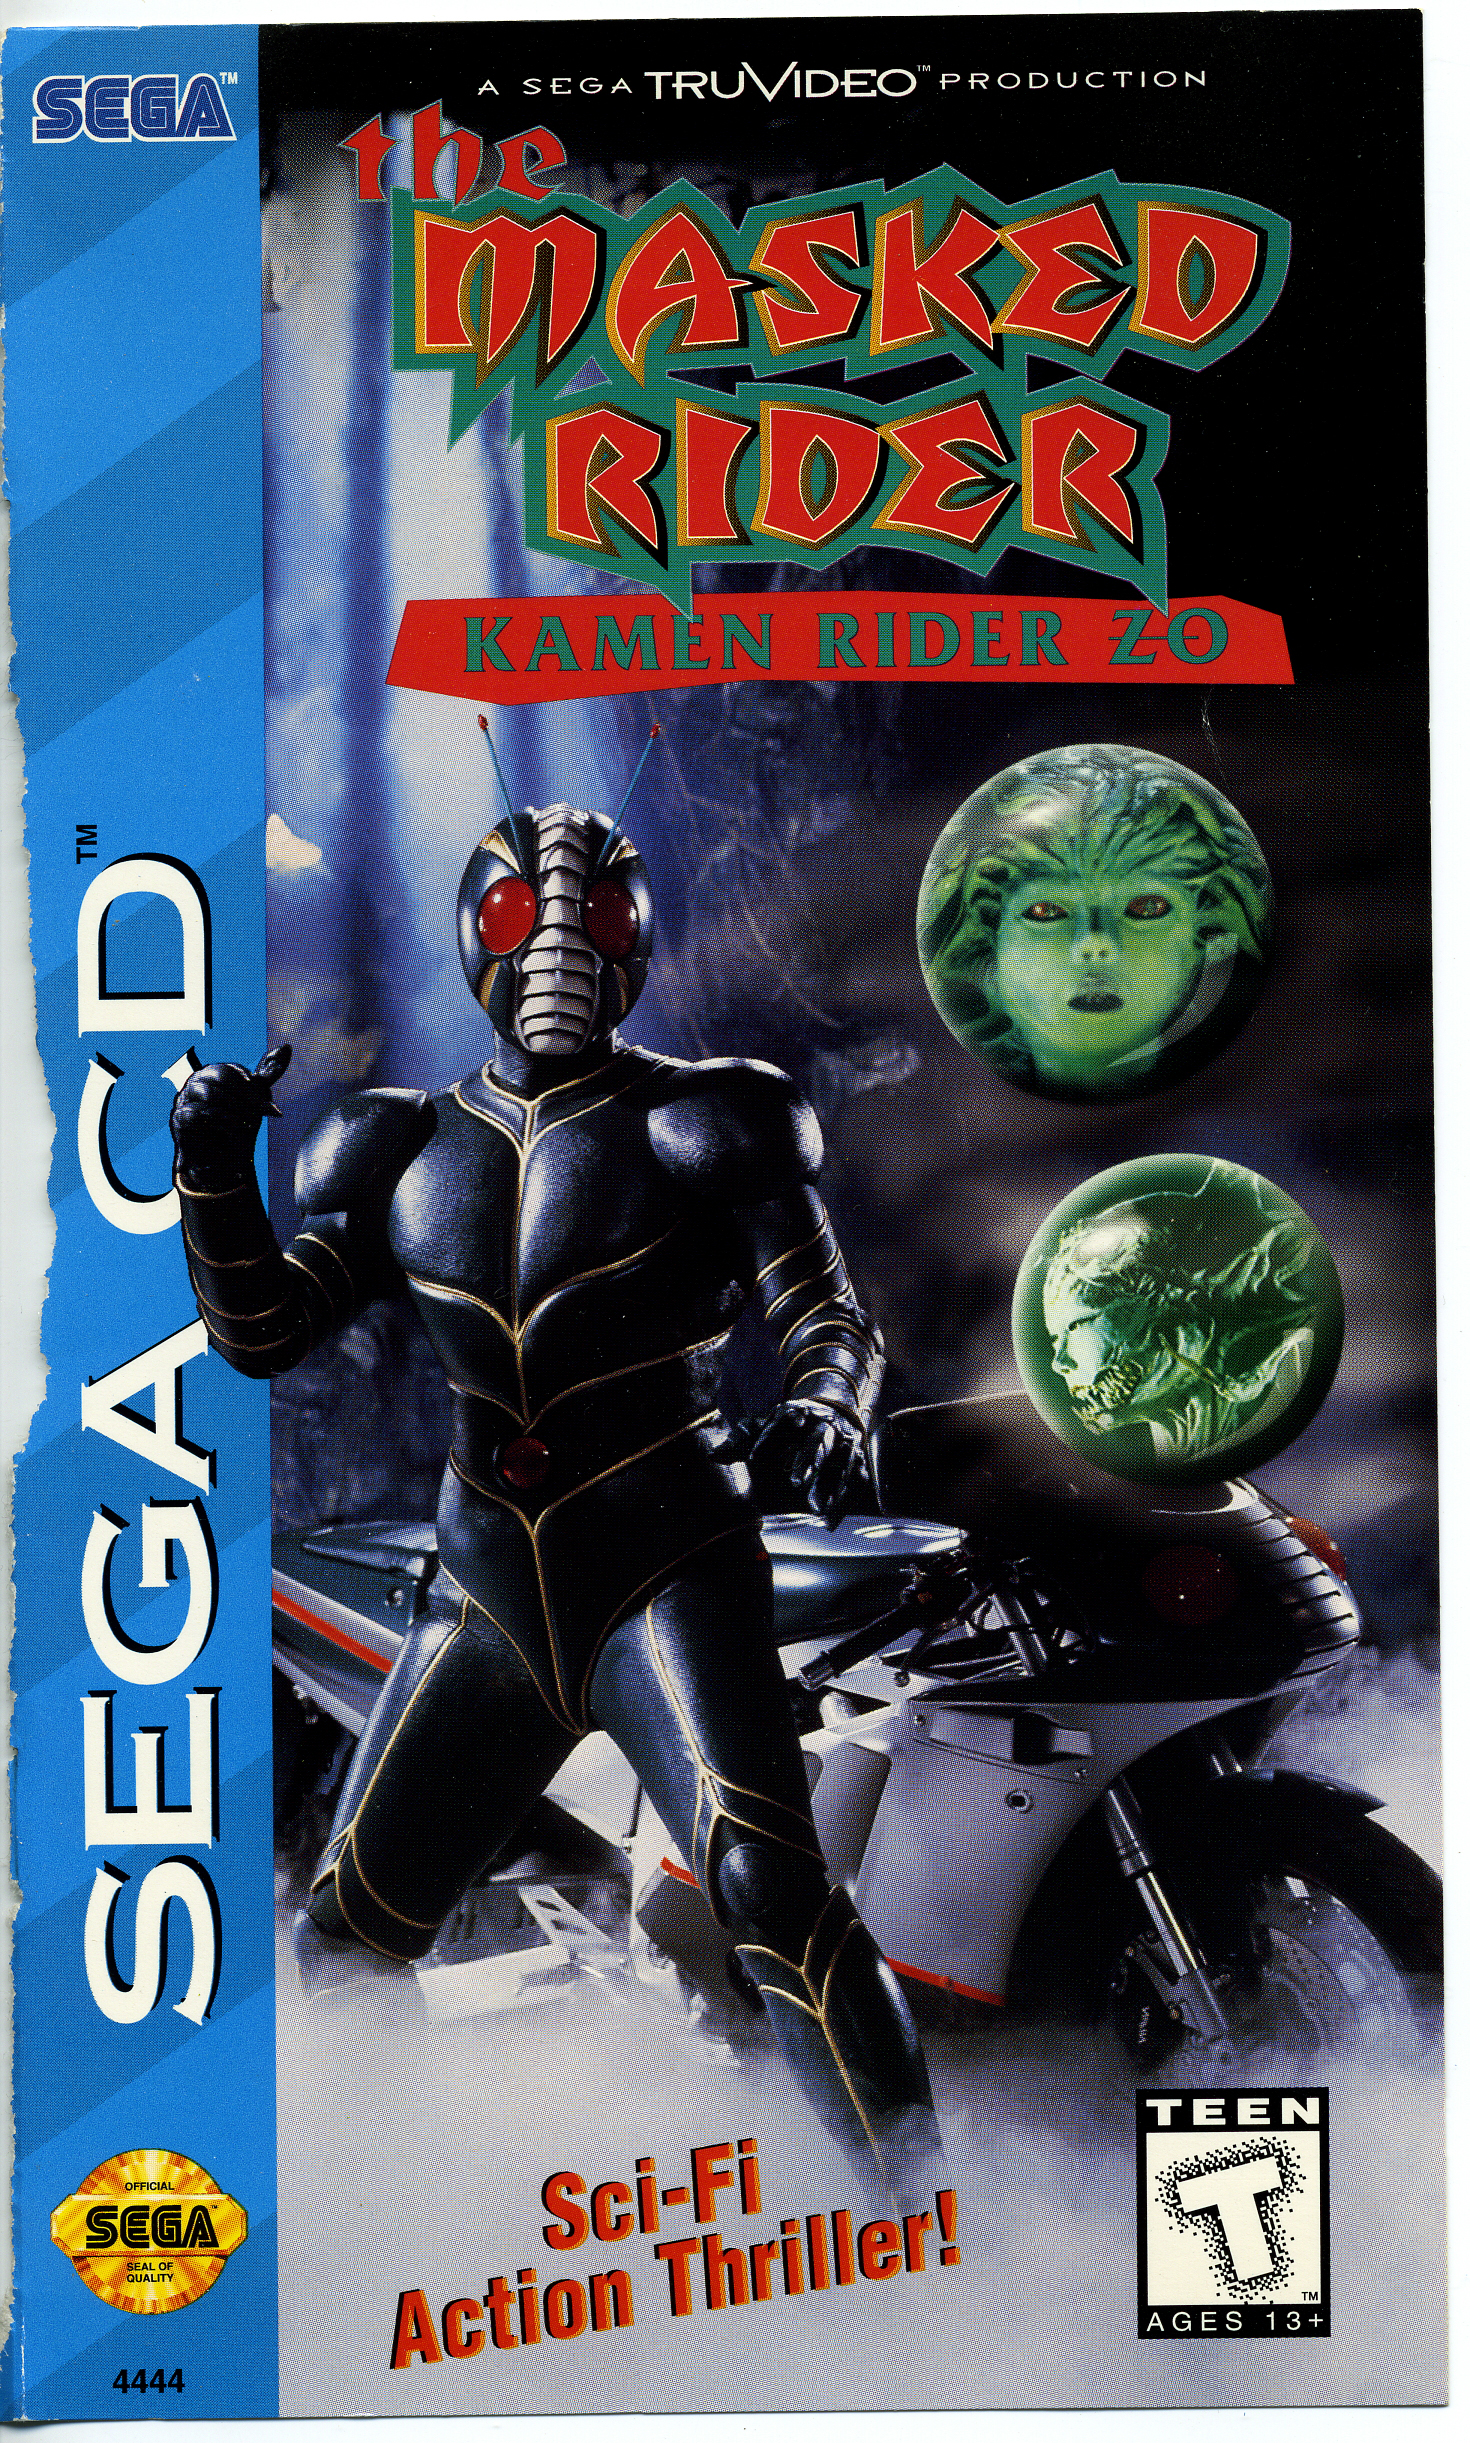 Masked Rider, The - Kamen Rider ZO (U) Front Cover